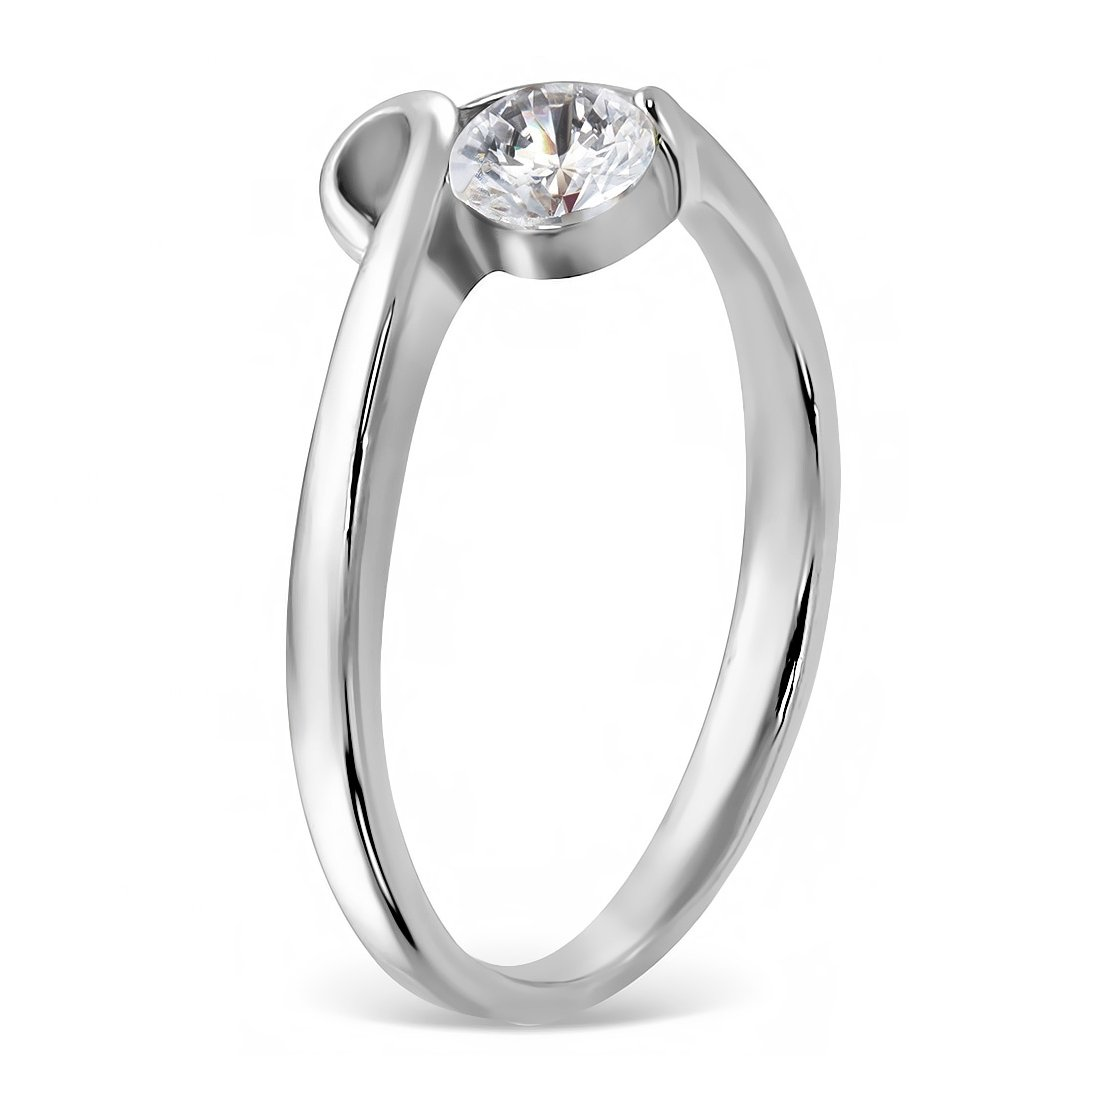 NRG Rings Stainless Steel Bezel-Set Engagement Ring with Clear CZ